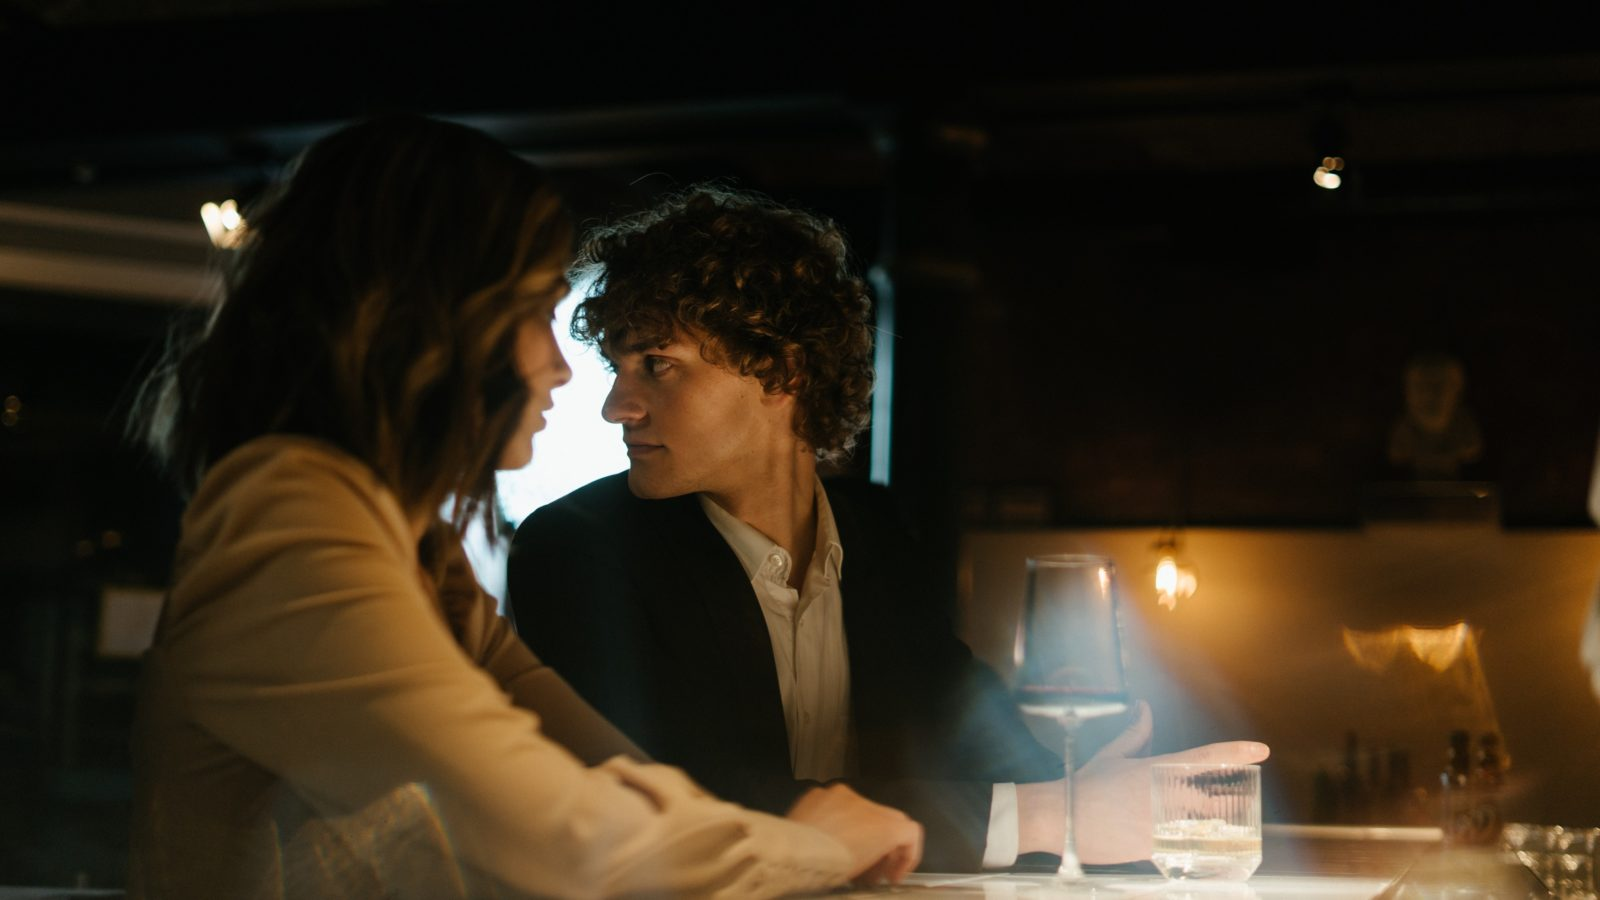 Not sure how she feels about you on a date? 3